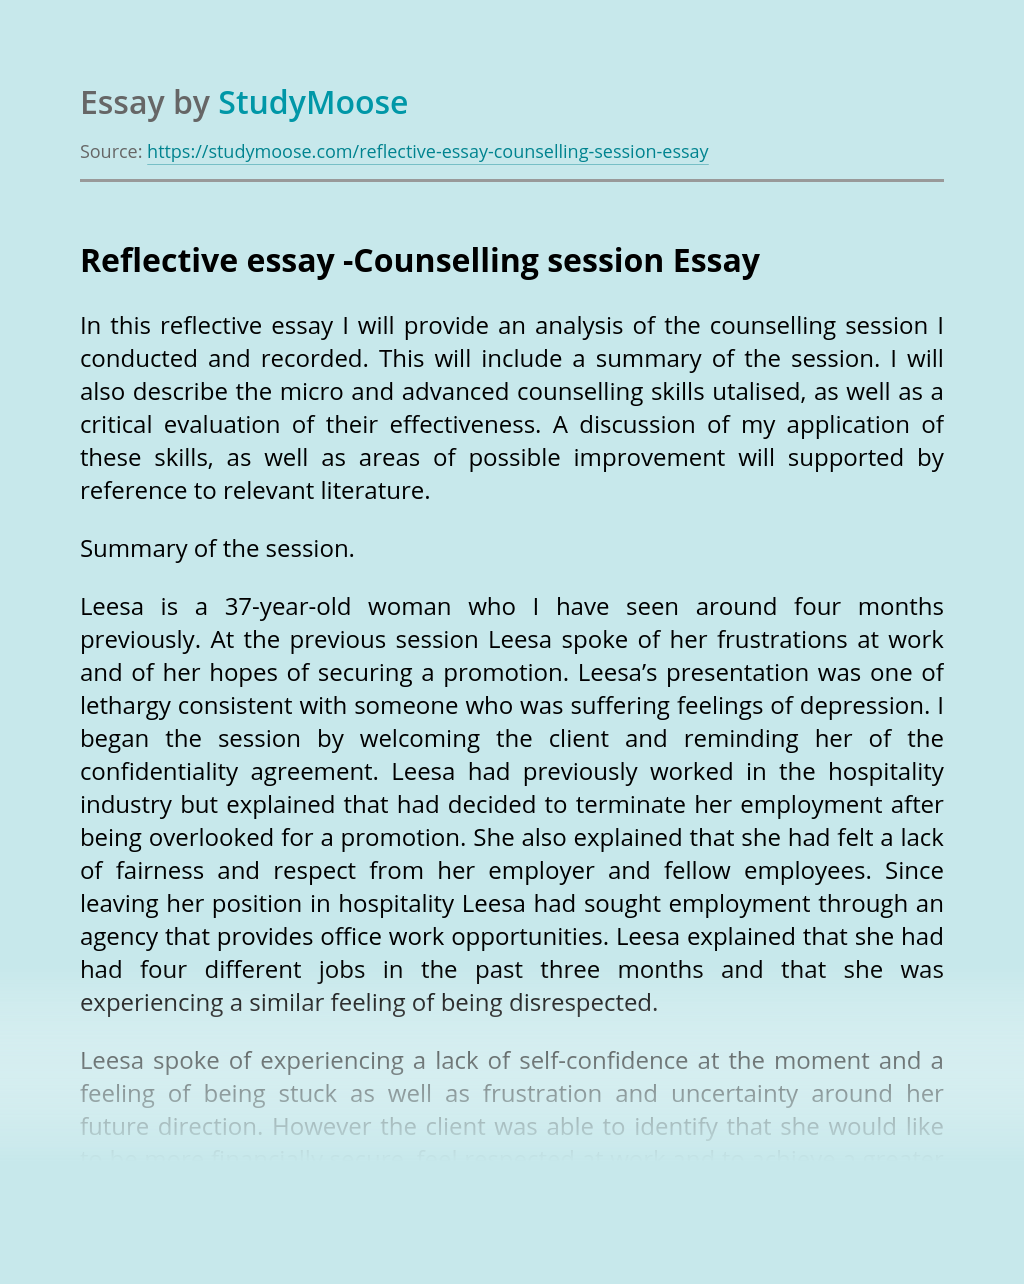 Reflective essay -Counselling session